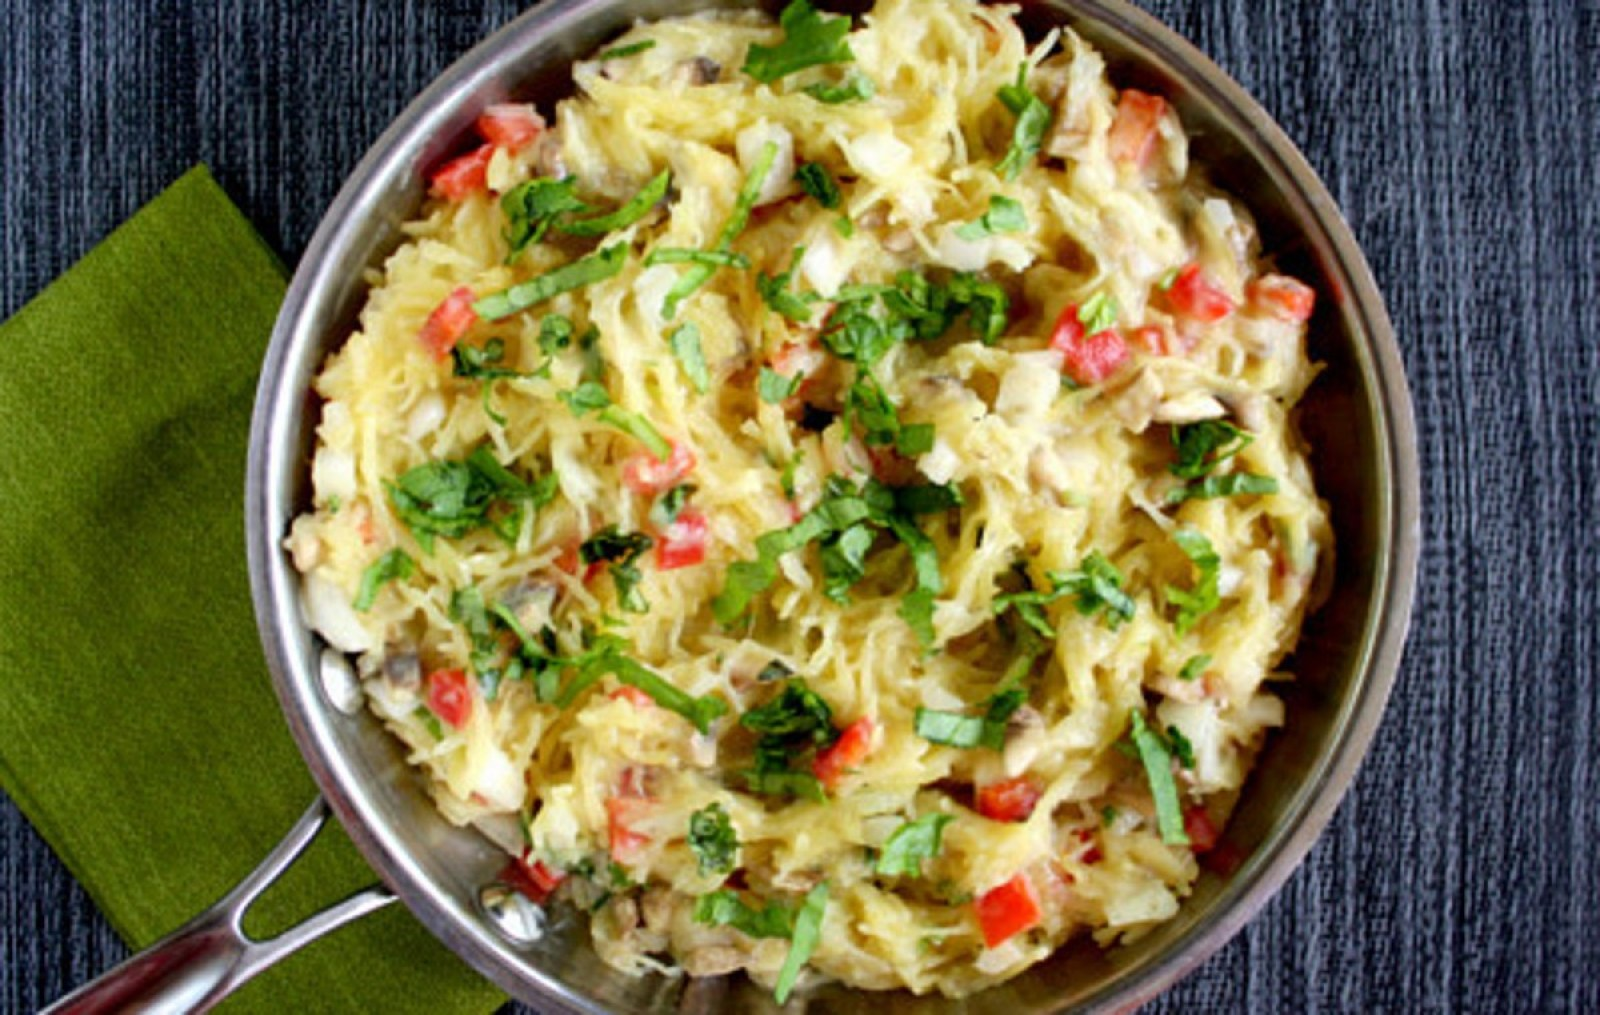 Vegan Spaghetti Squash With Basil and Creamy Cauliflower Alfredo Sauce with vegetables